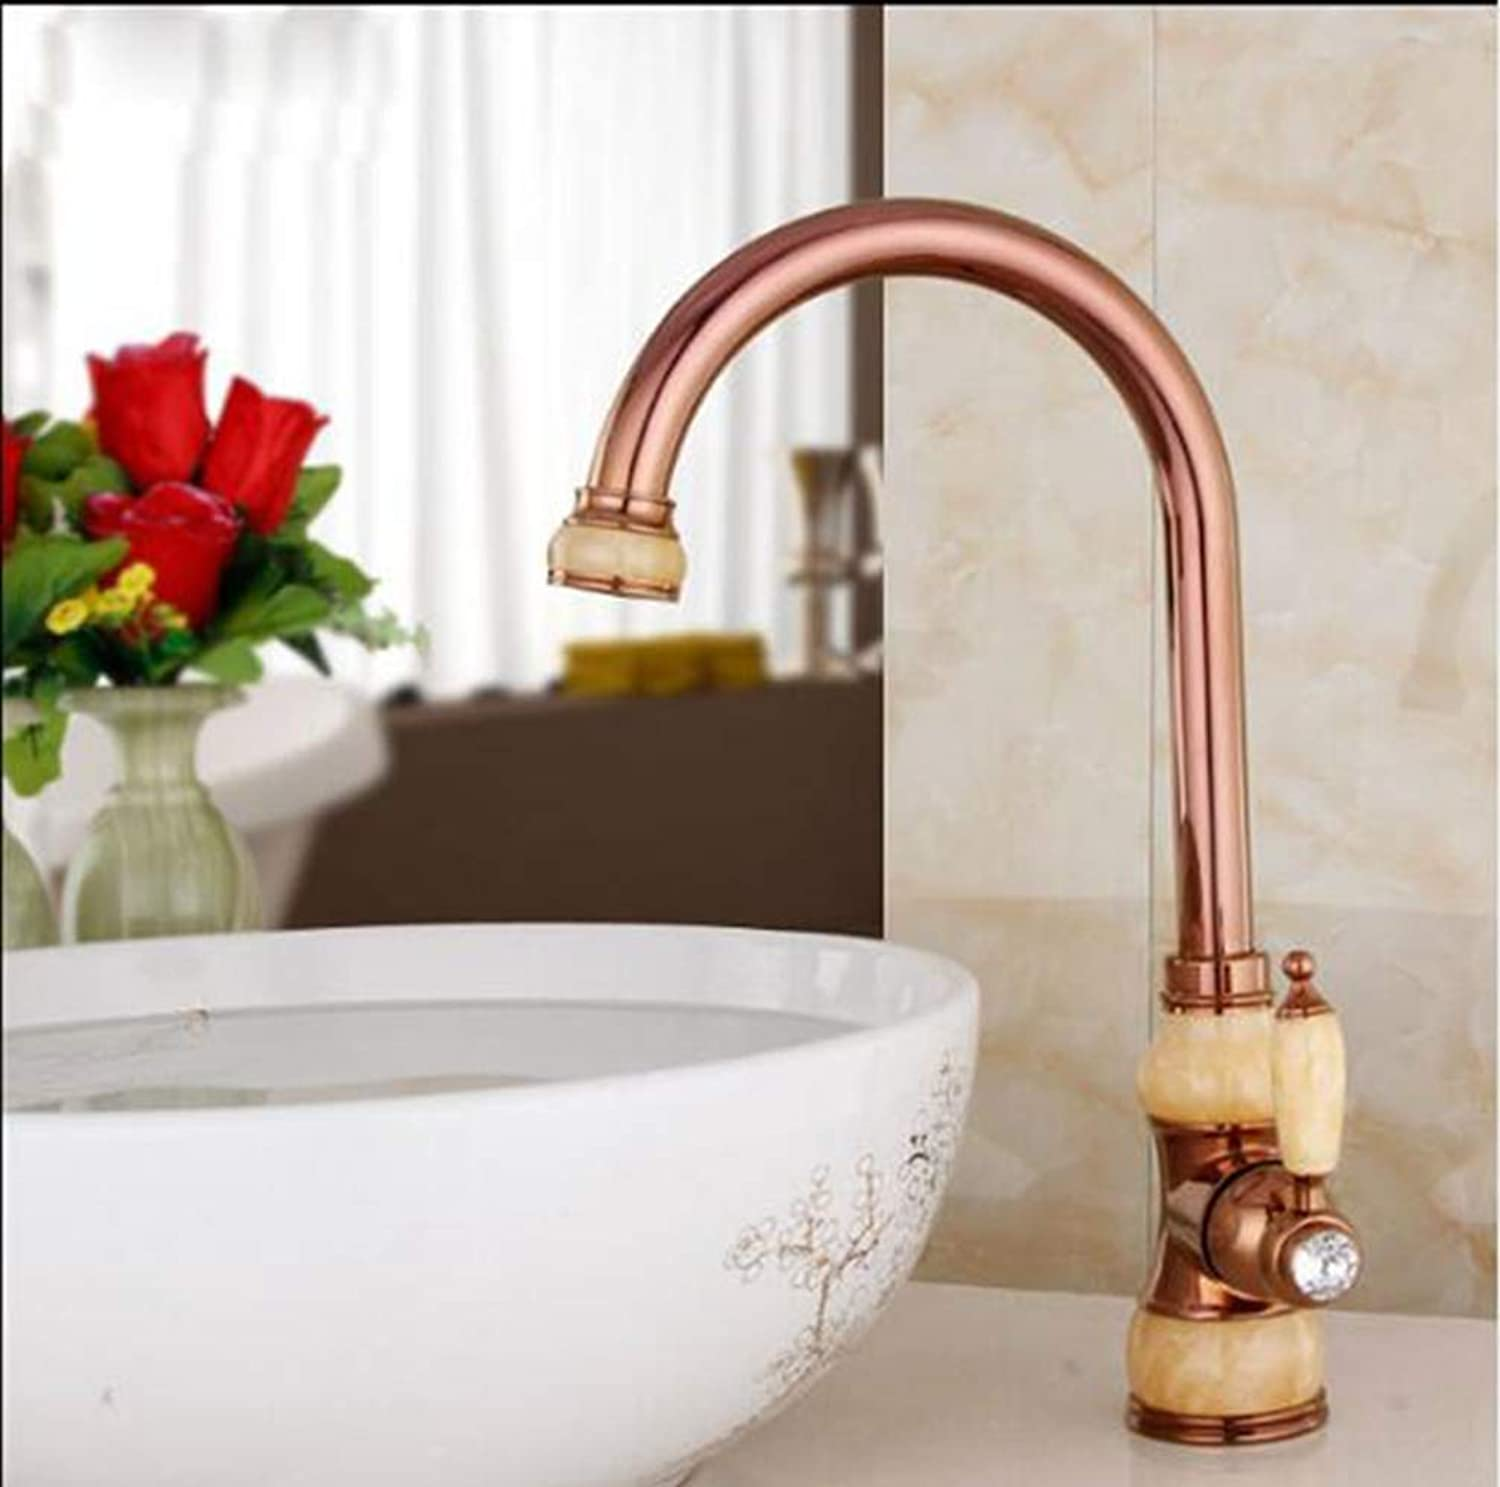 FZHLR Brass Torneira Cozinha with Jade Kitchen Faucet∕Single Handle gold Finish Basin Sink Mixers Taps Sink Faucet,C